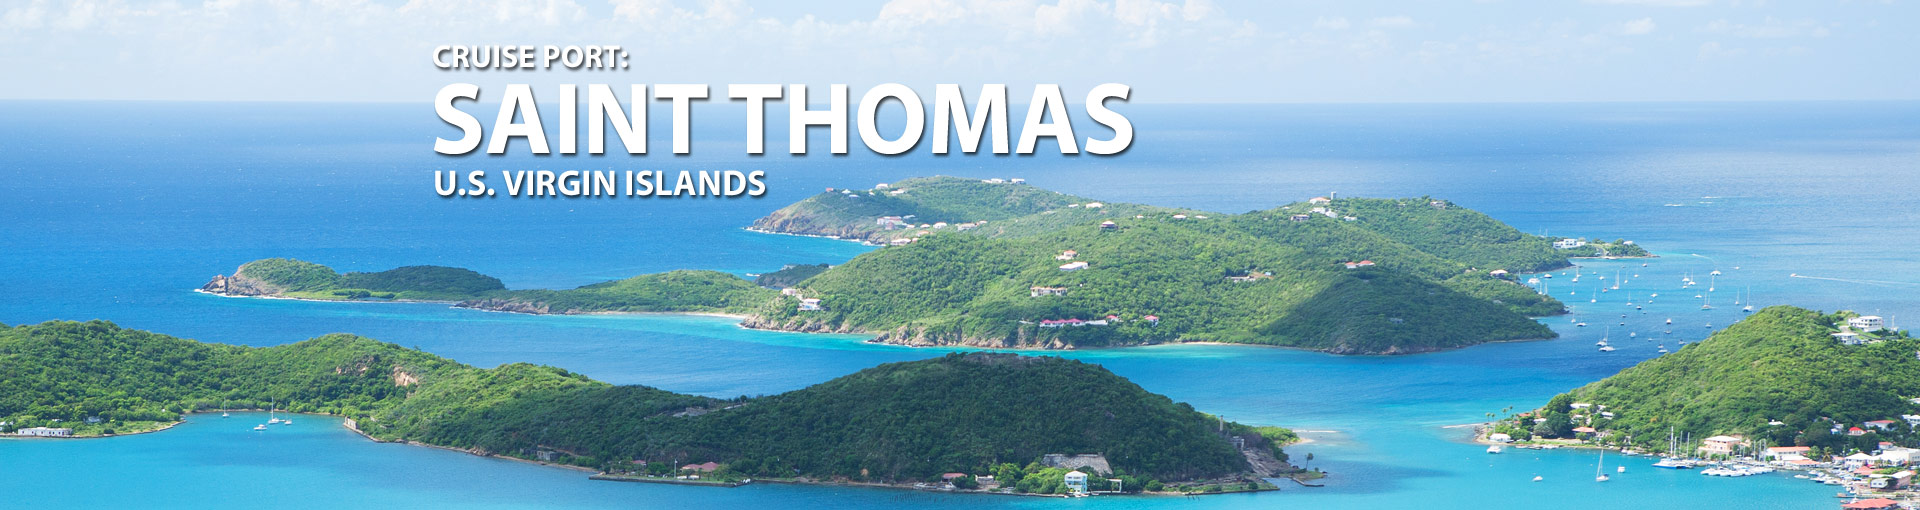 Cruises to St. Thomas, US Virgin Islands